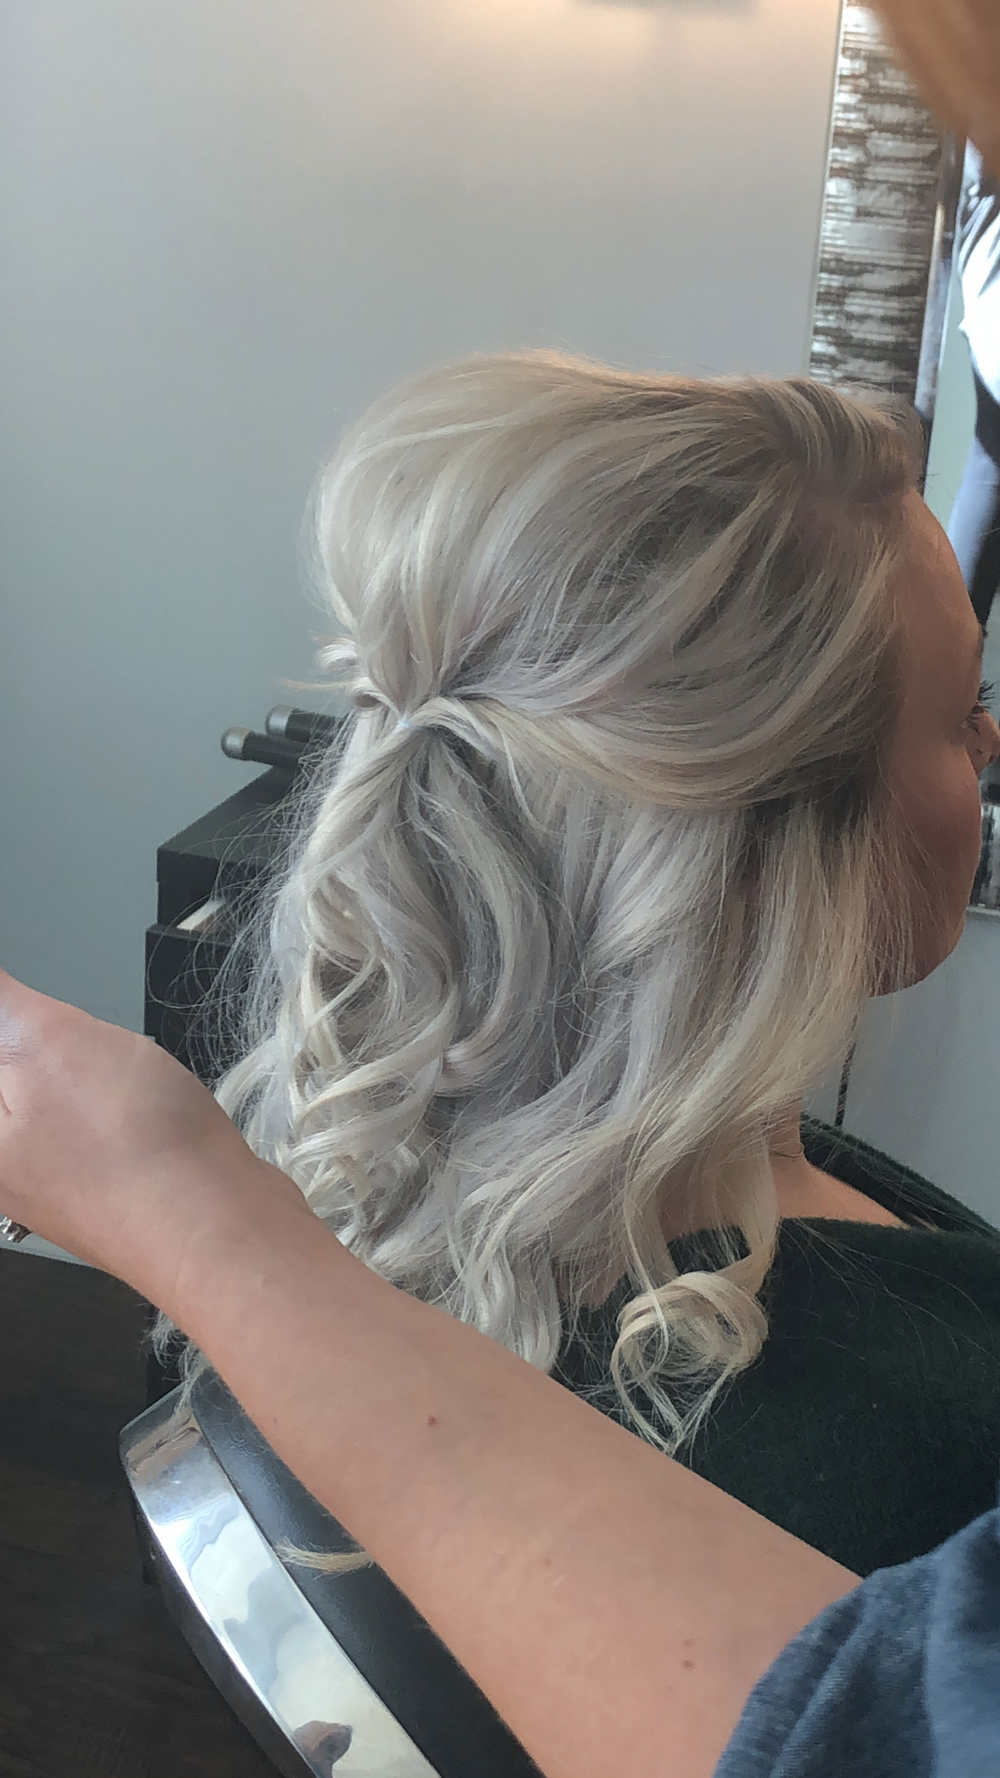 @lzhouseofhair began by curling the hair all around. She then blasted the hair with Living Proof's Dry Volume Spray and Design.Me's Dry Shampoo for Blondes. She next gathered two front pieces and twisted them to create volume before securing them with an elastic.